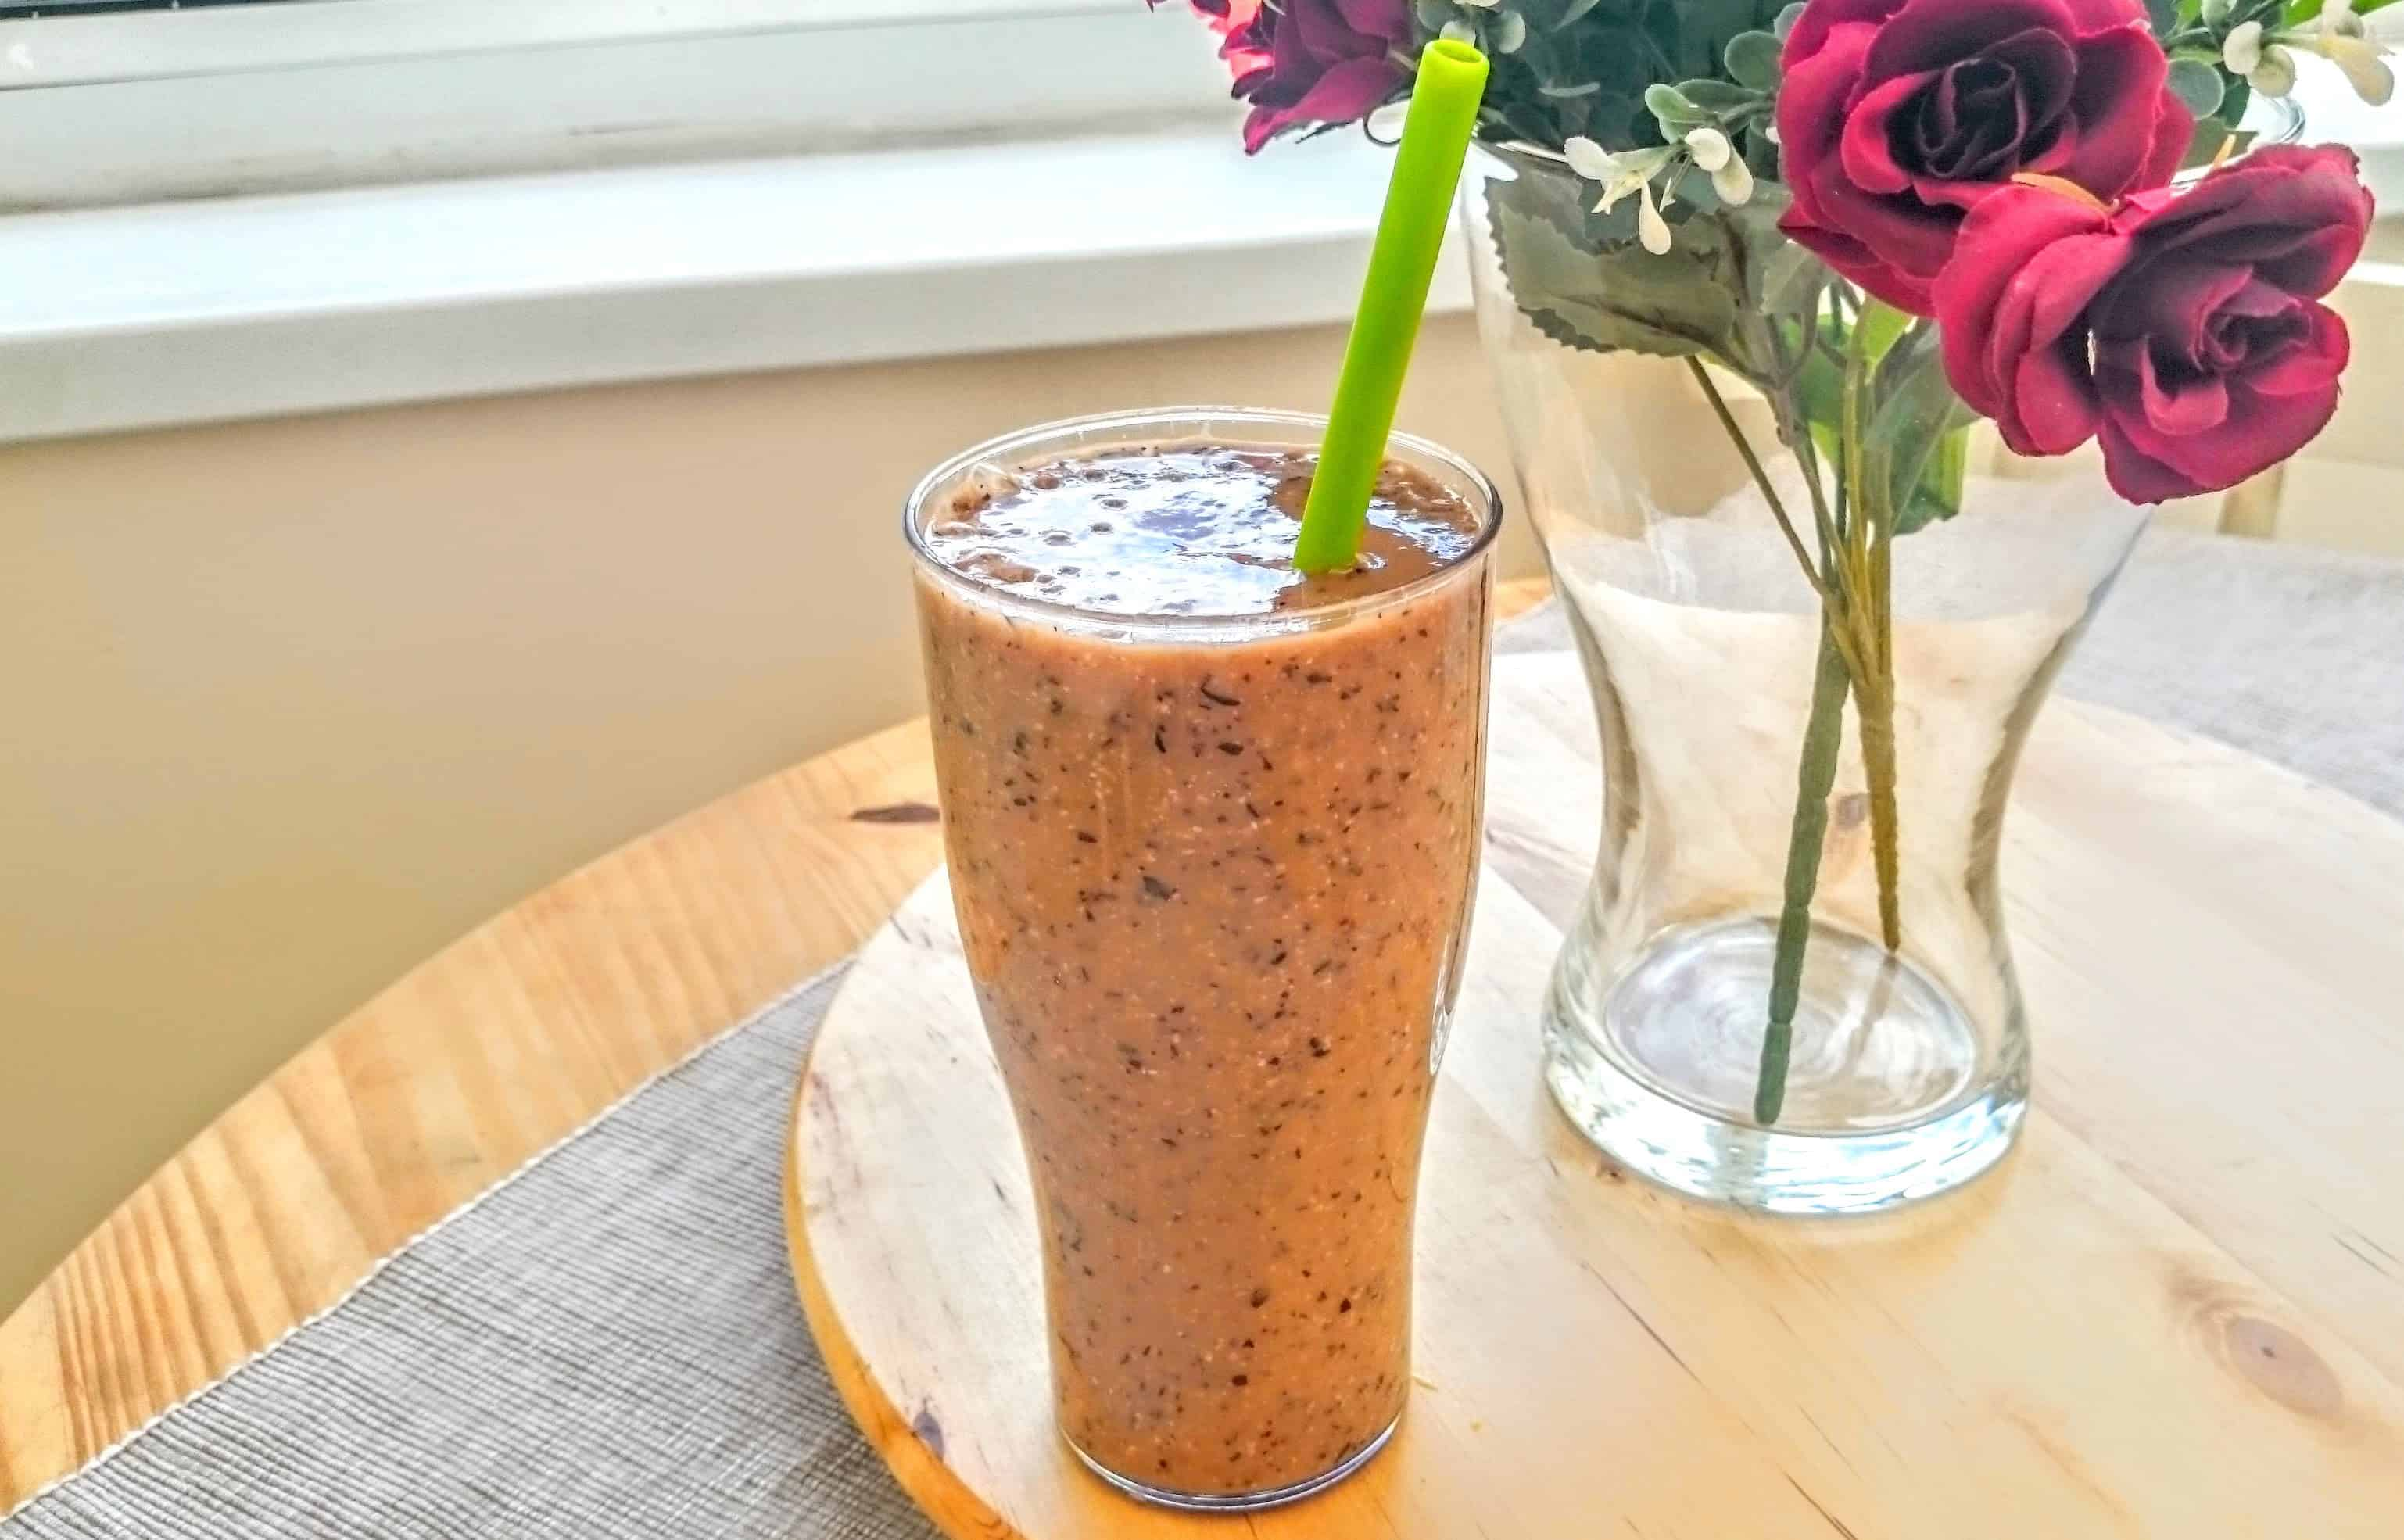 Vegan Blueberry & Mango Oaty Breakfast Smoothie Recipe for One